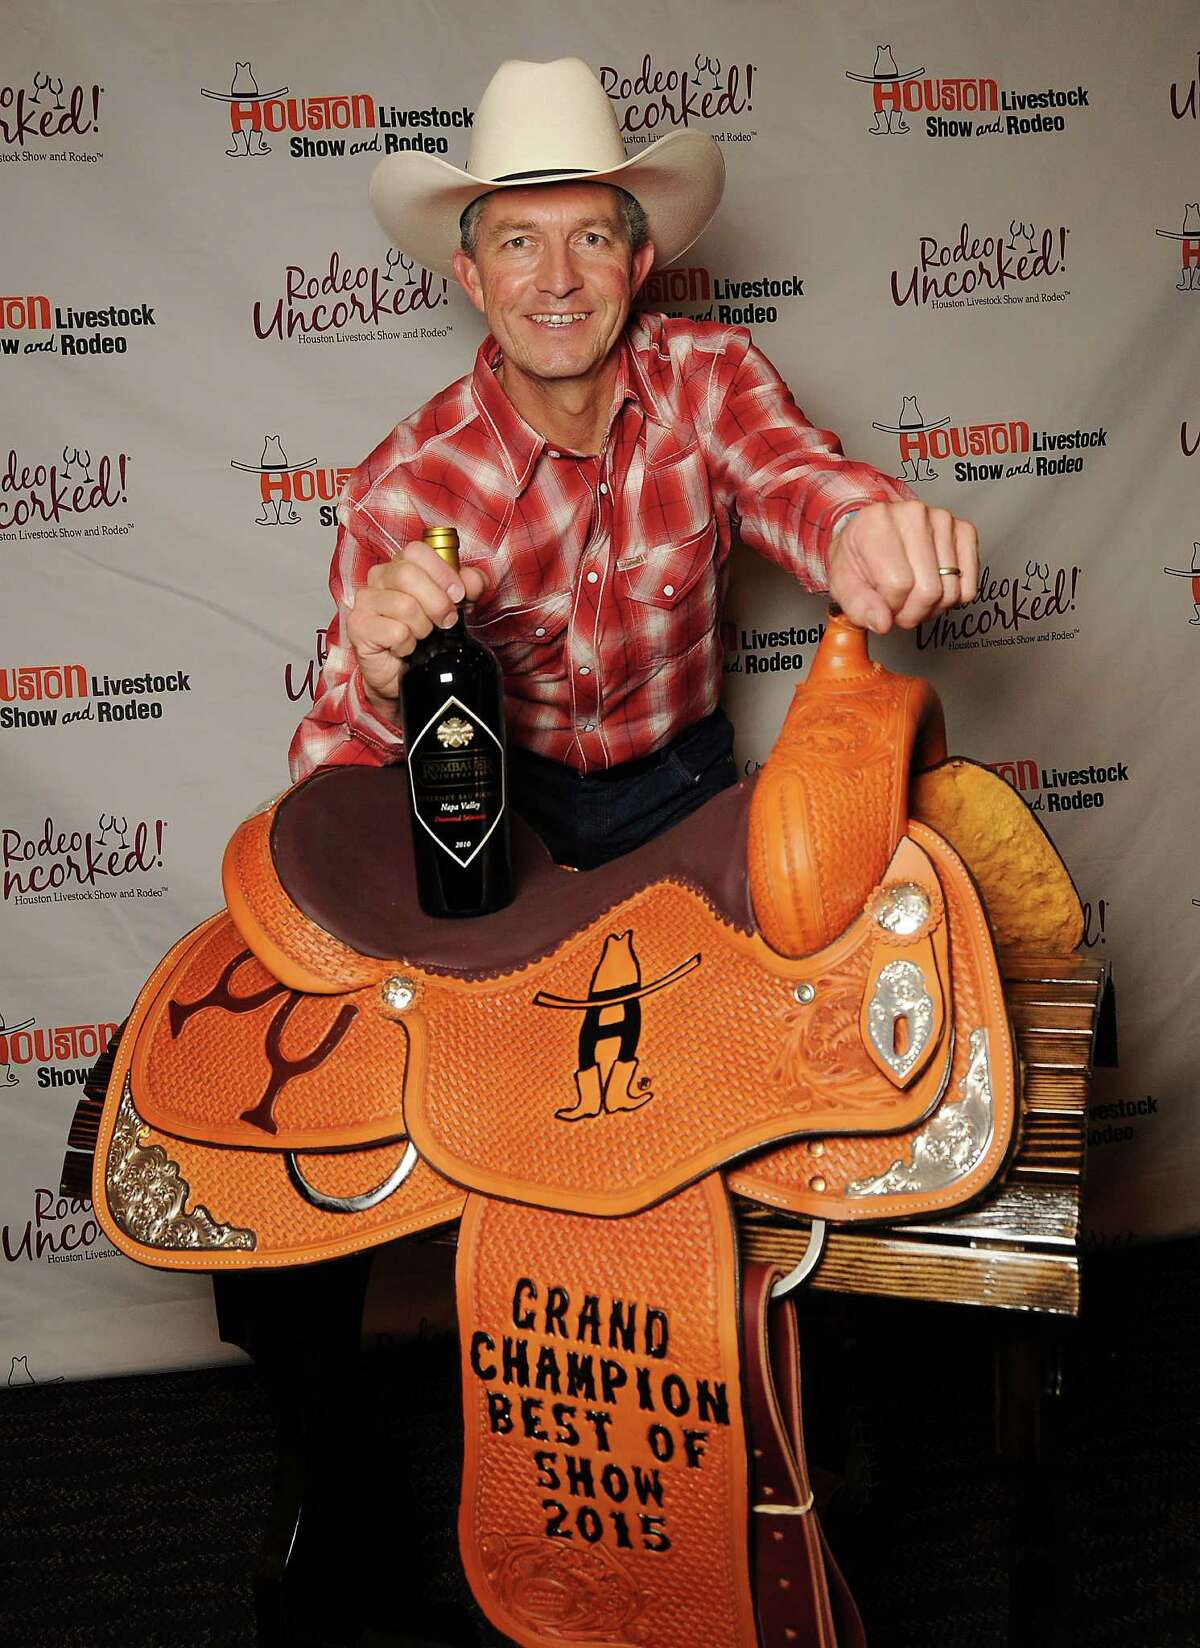 Winners of the International Wine Competition, like Grand Champion Wine winner K.R. Rombauer of Rombauer Vineyards, are awarded with custom-made saddles, chaps and belt buckles.